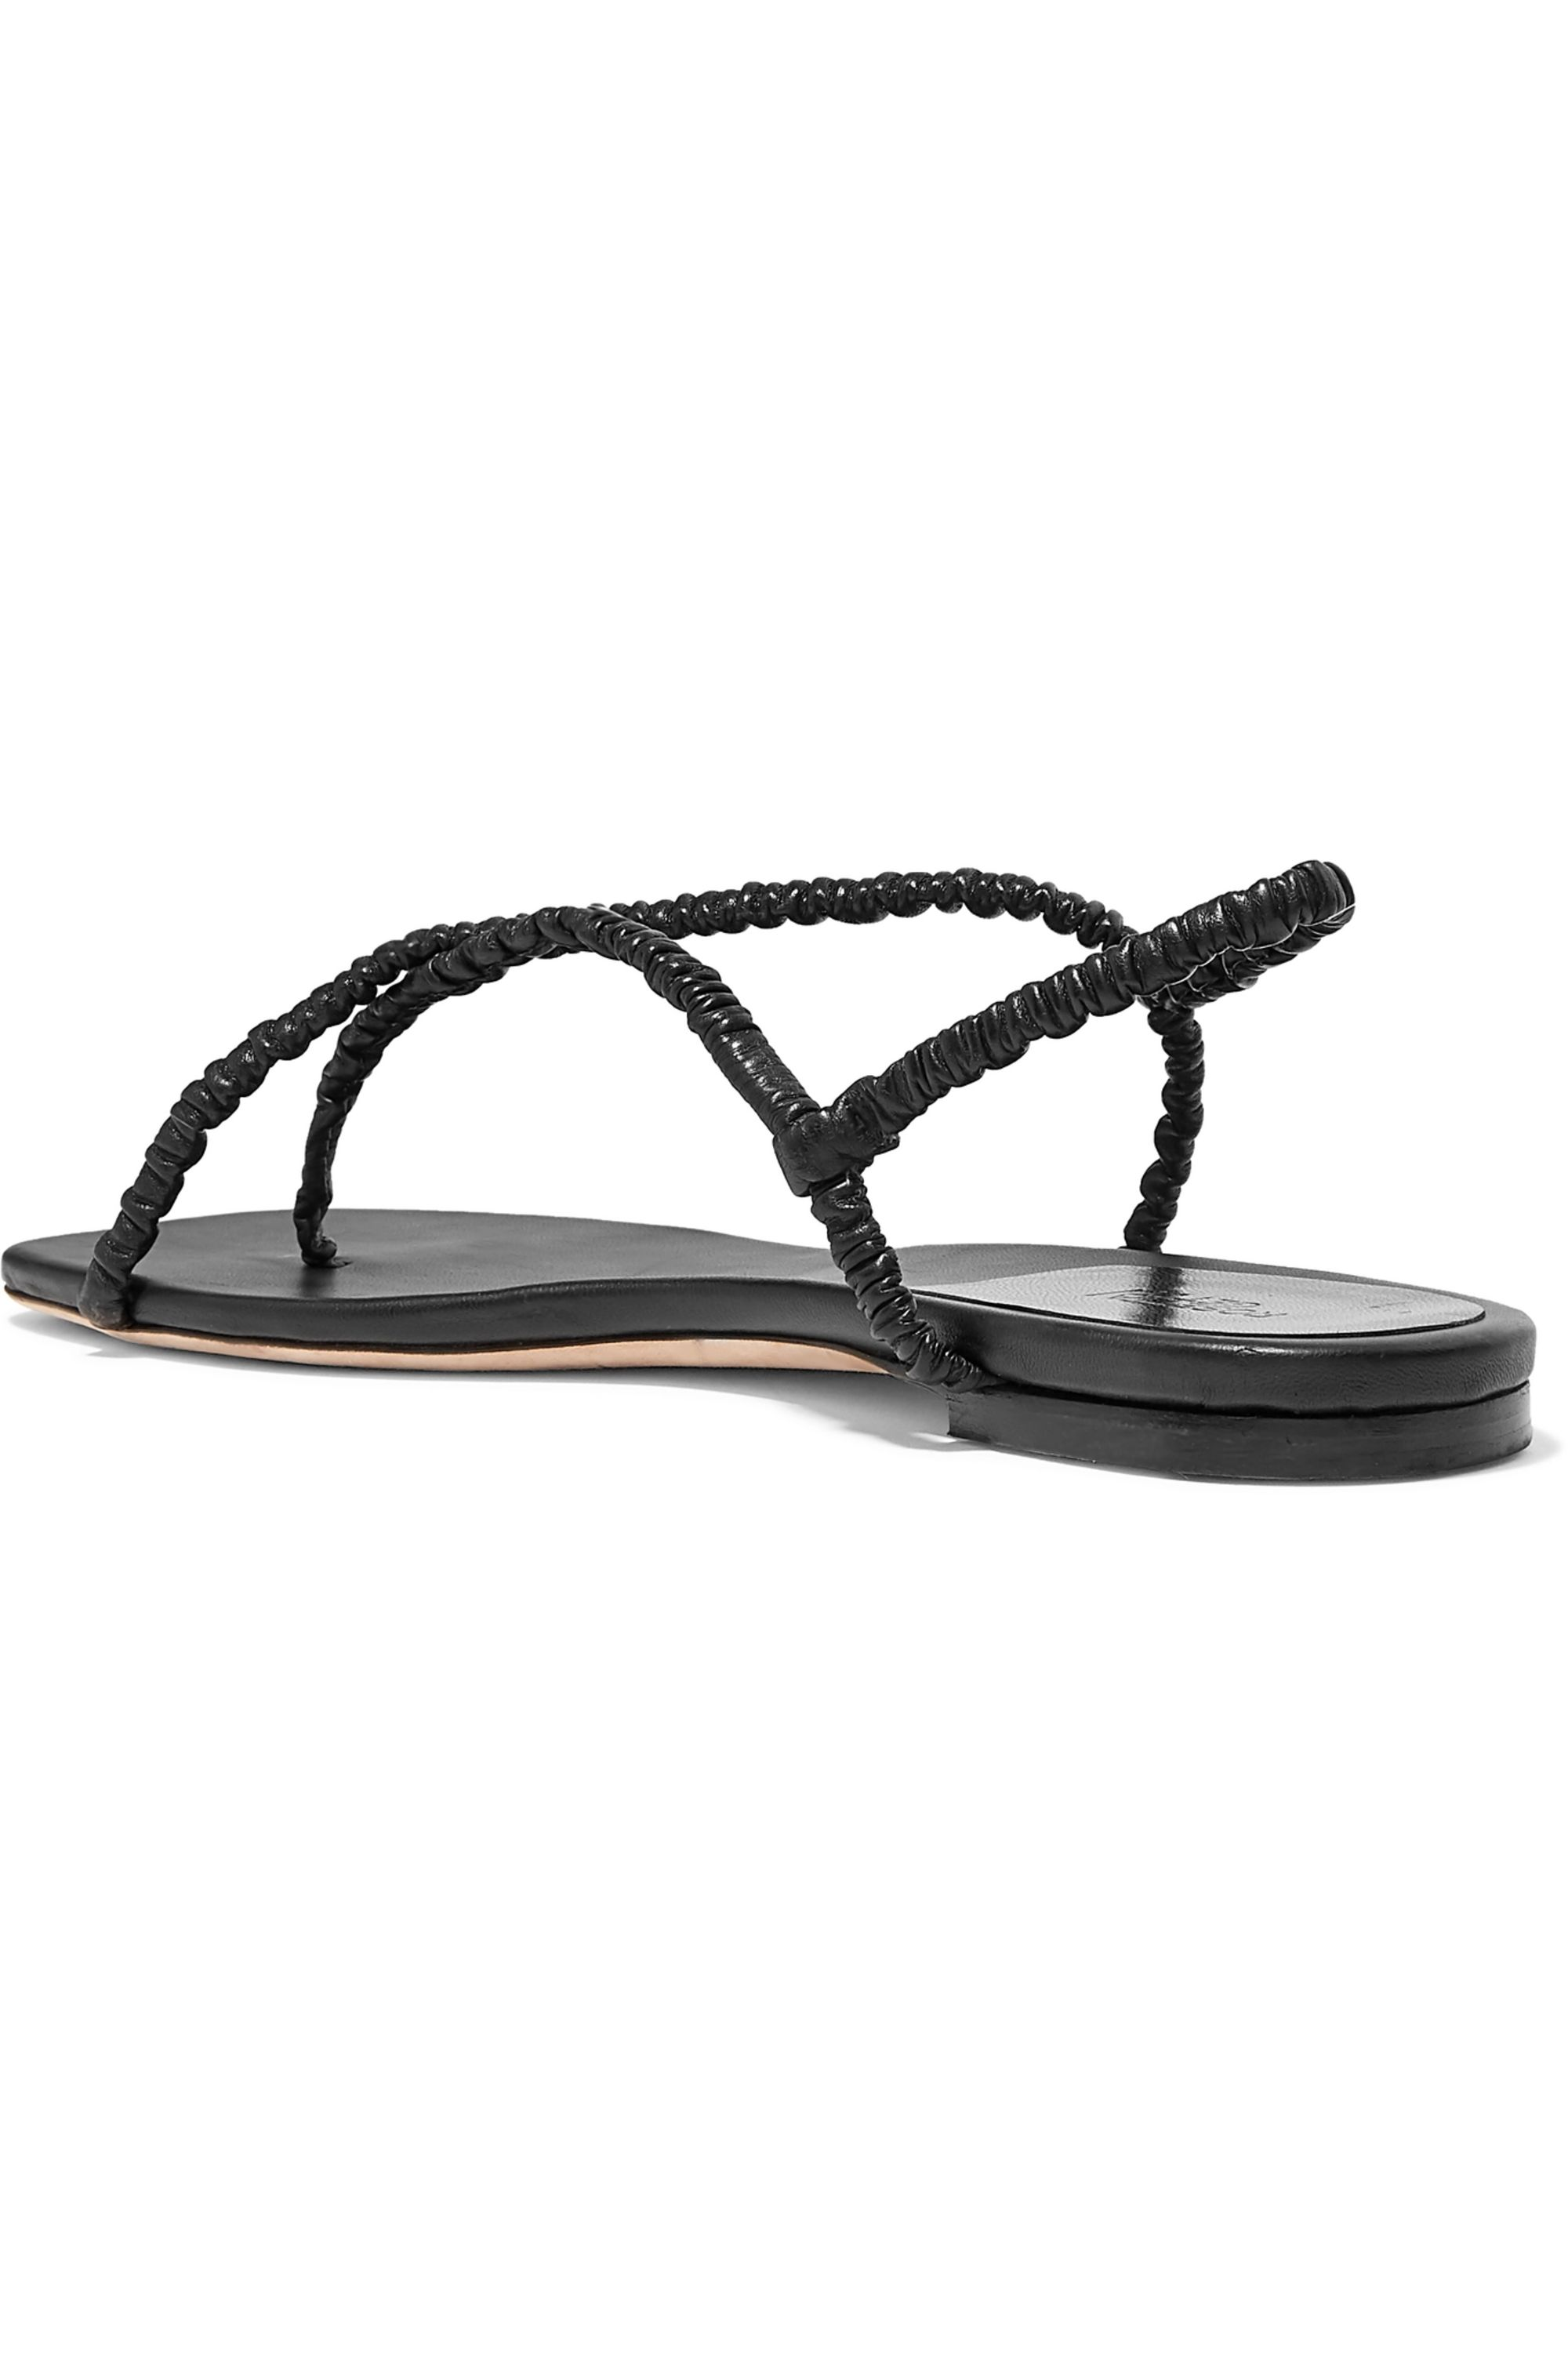 Rosetta Getty Leather slingback sandals